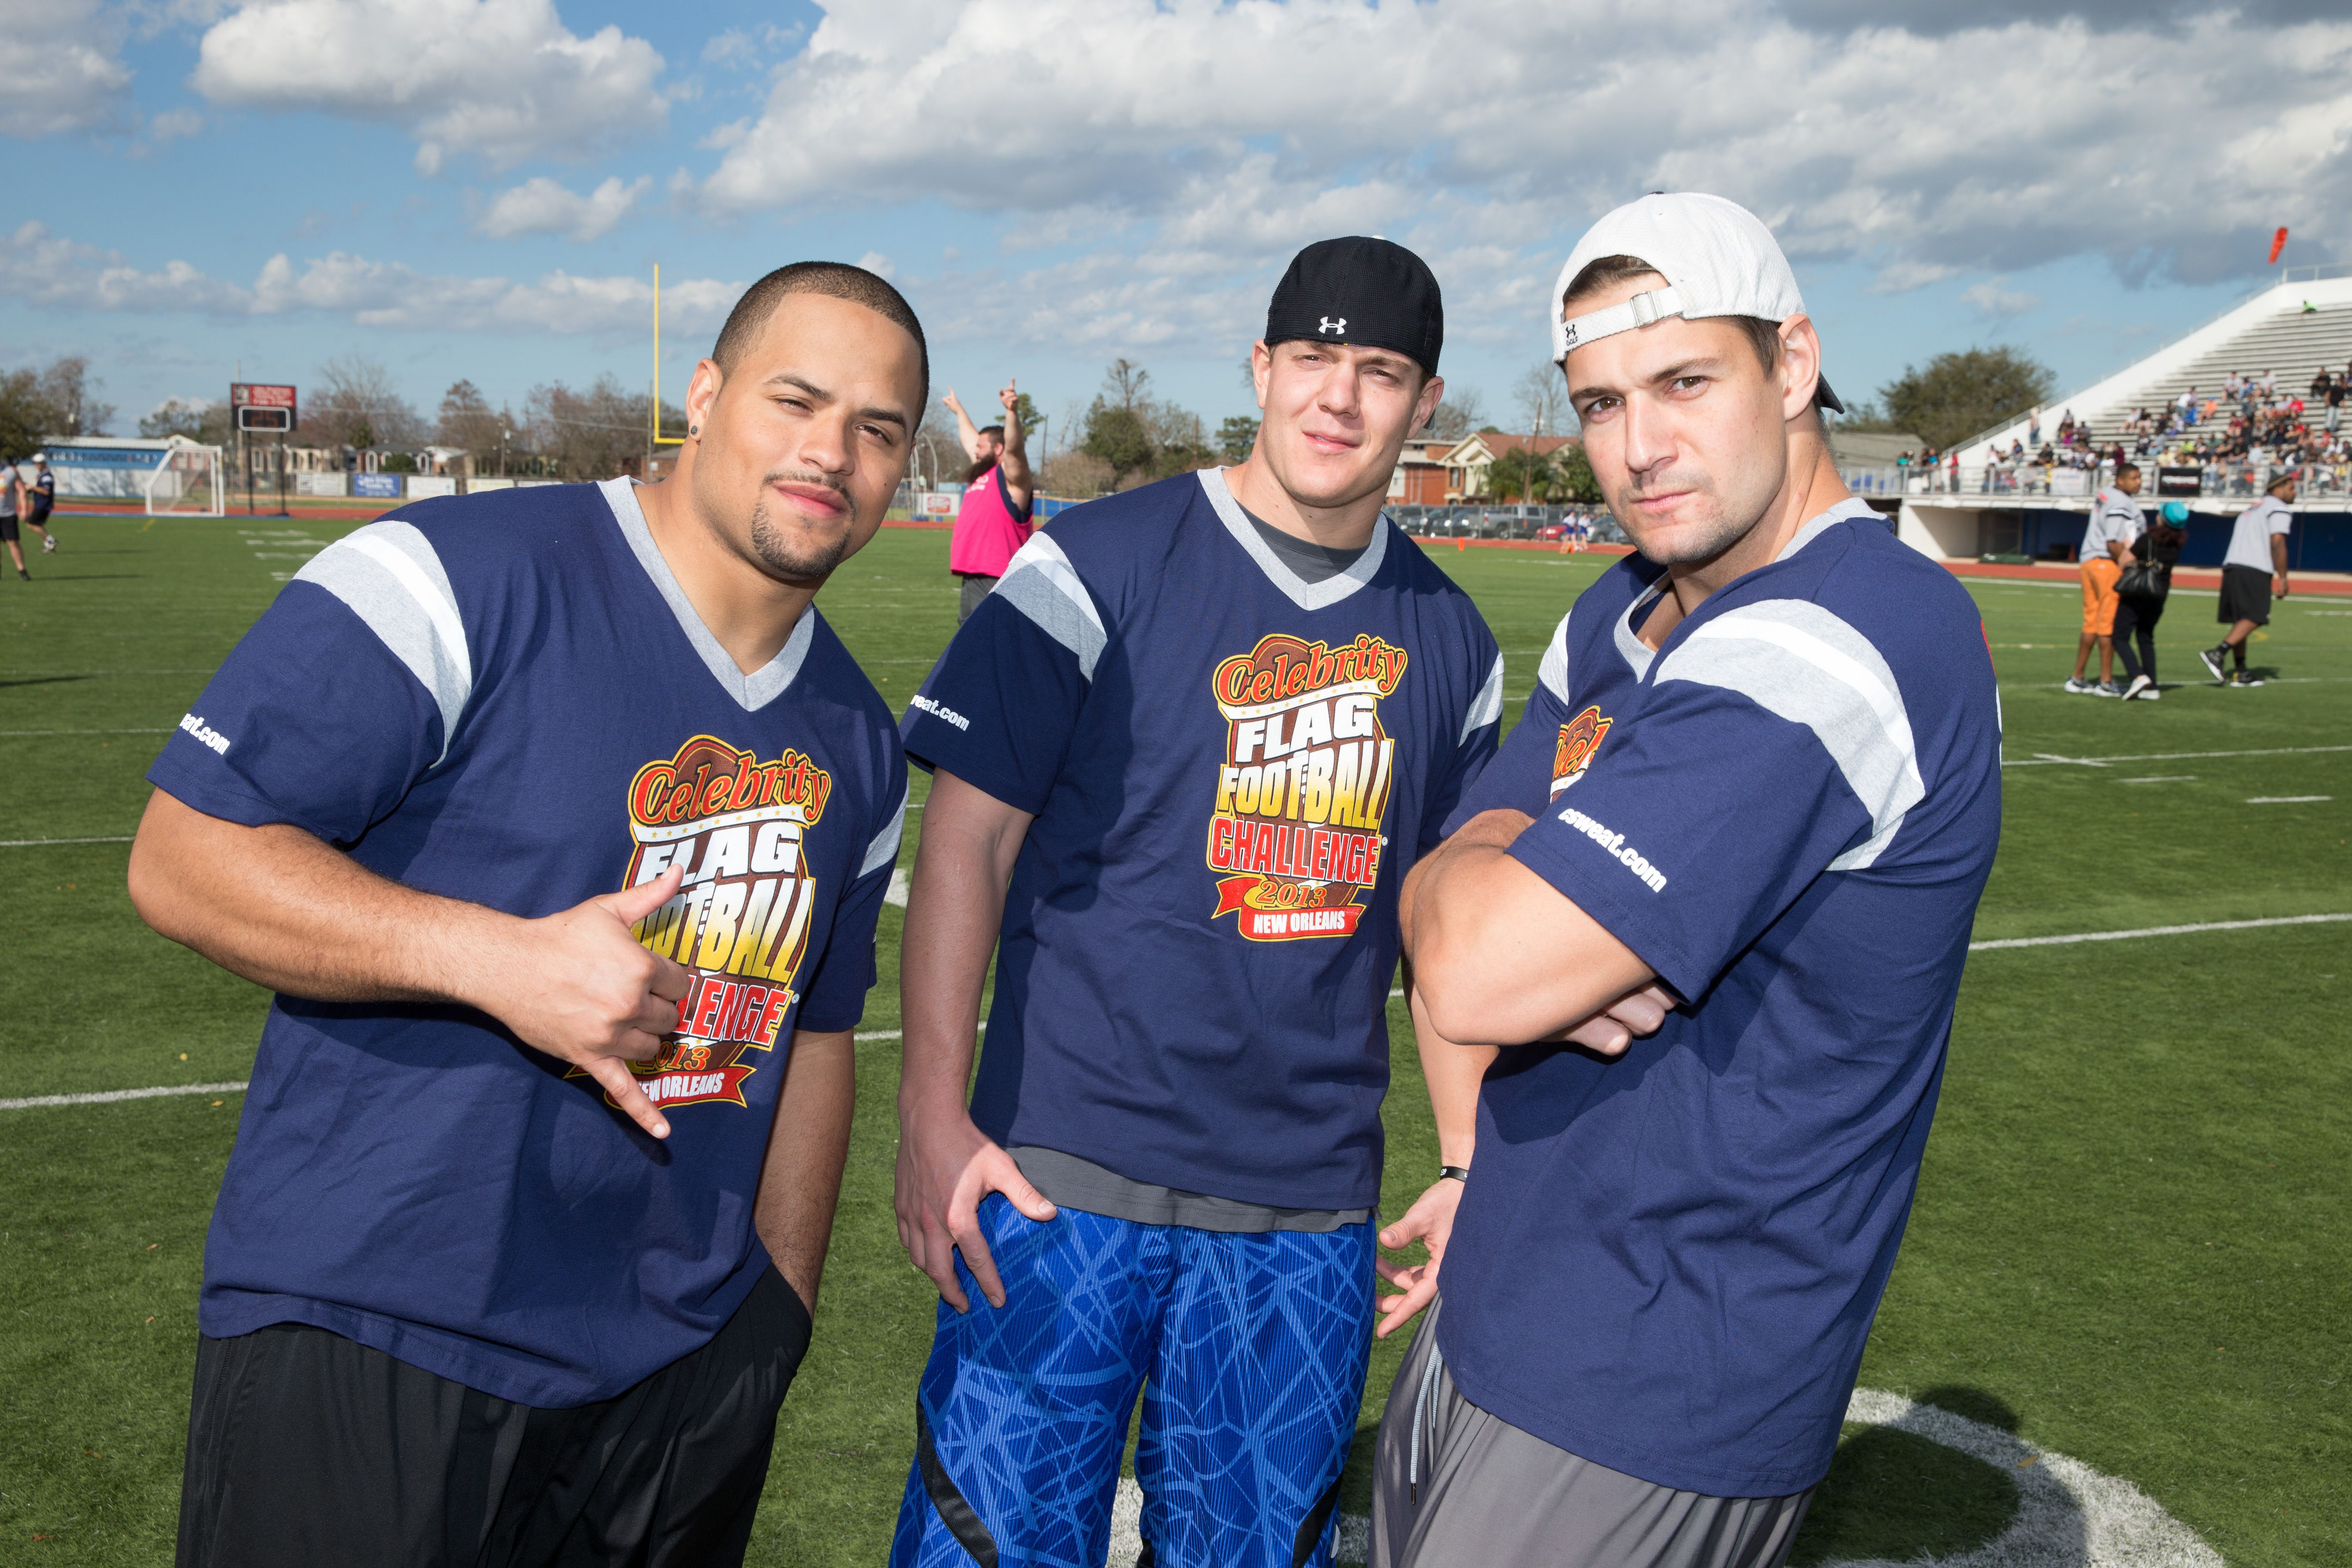 The Gronkowski Brothers Back Again Gronkowski New England Patriots Flag Football